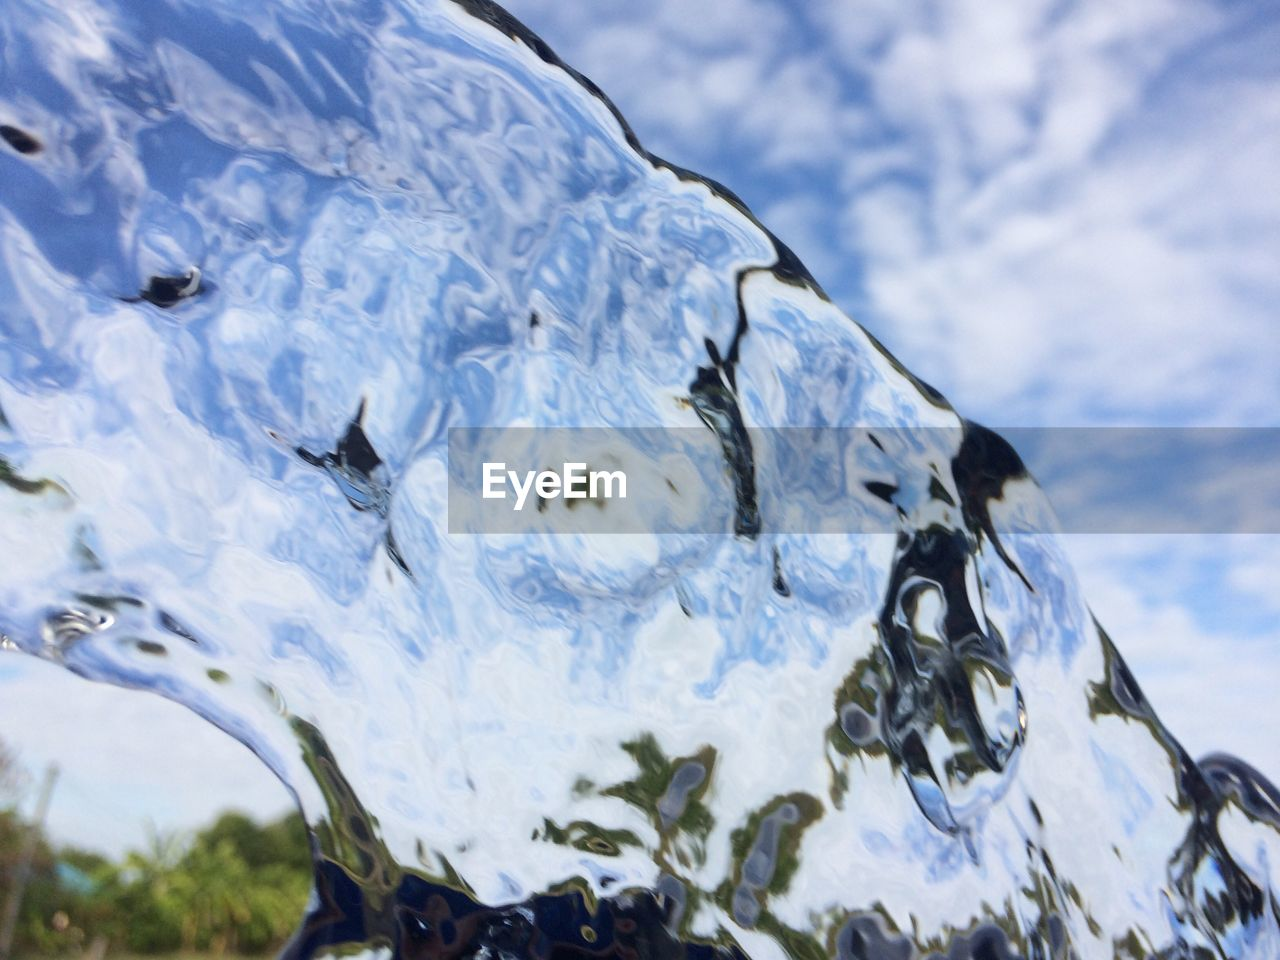 cold temperature, winter, no people, close-up, nature, day, ice, snow, frozen, focus on foreground, sky, outdoors, cloud - sky, water, icicle, melting, selective focus, environment, purity